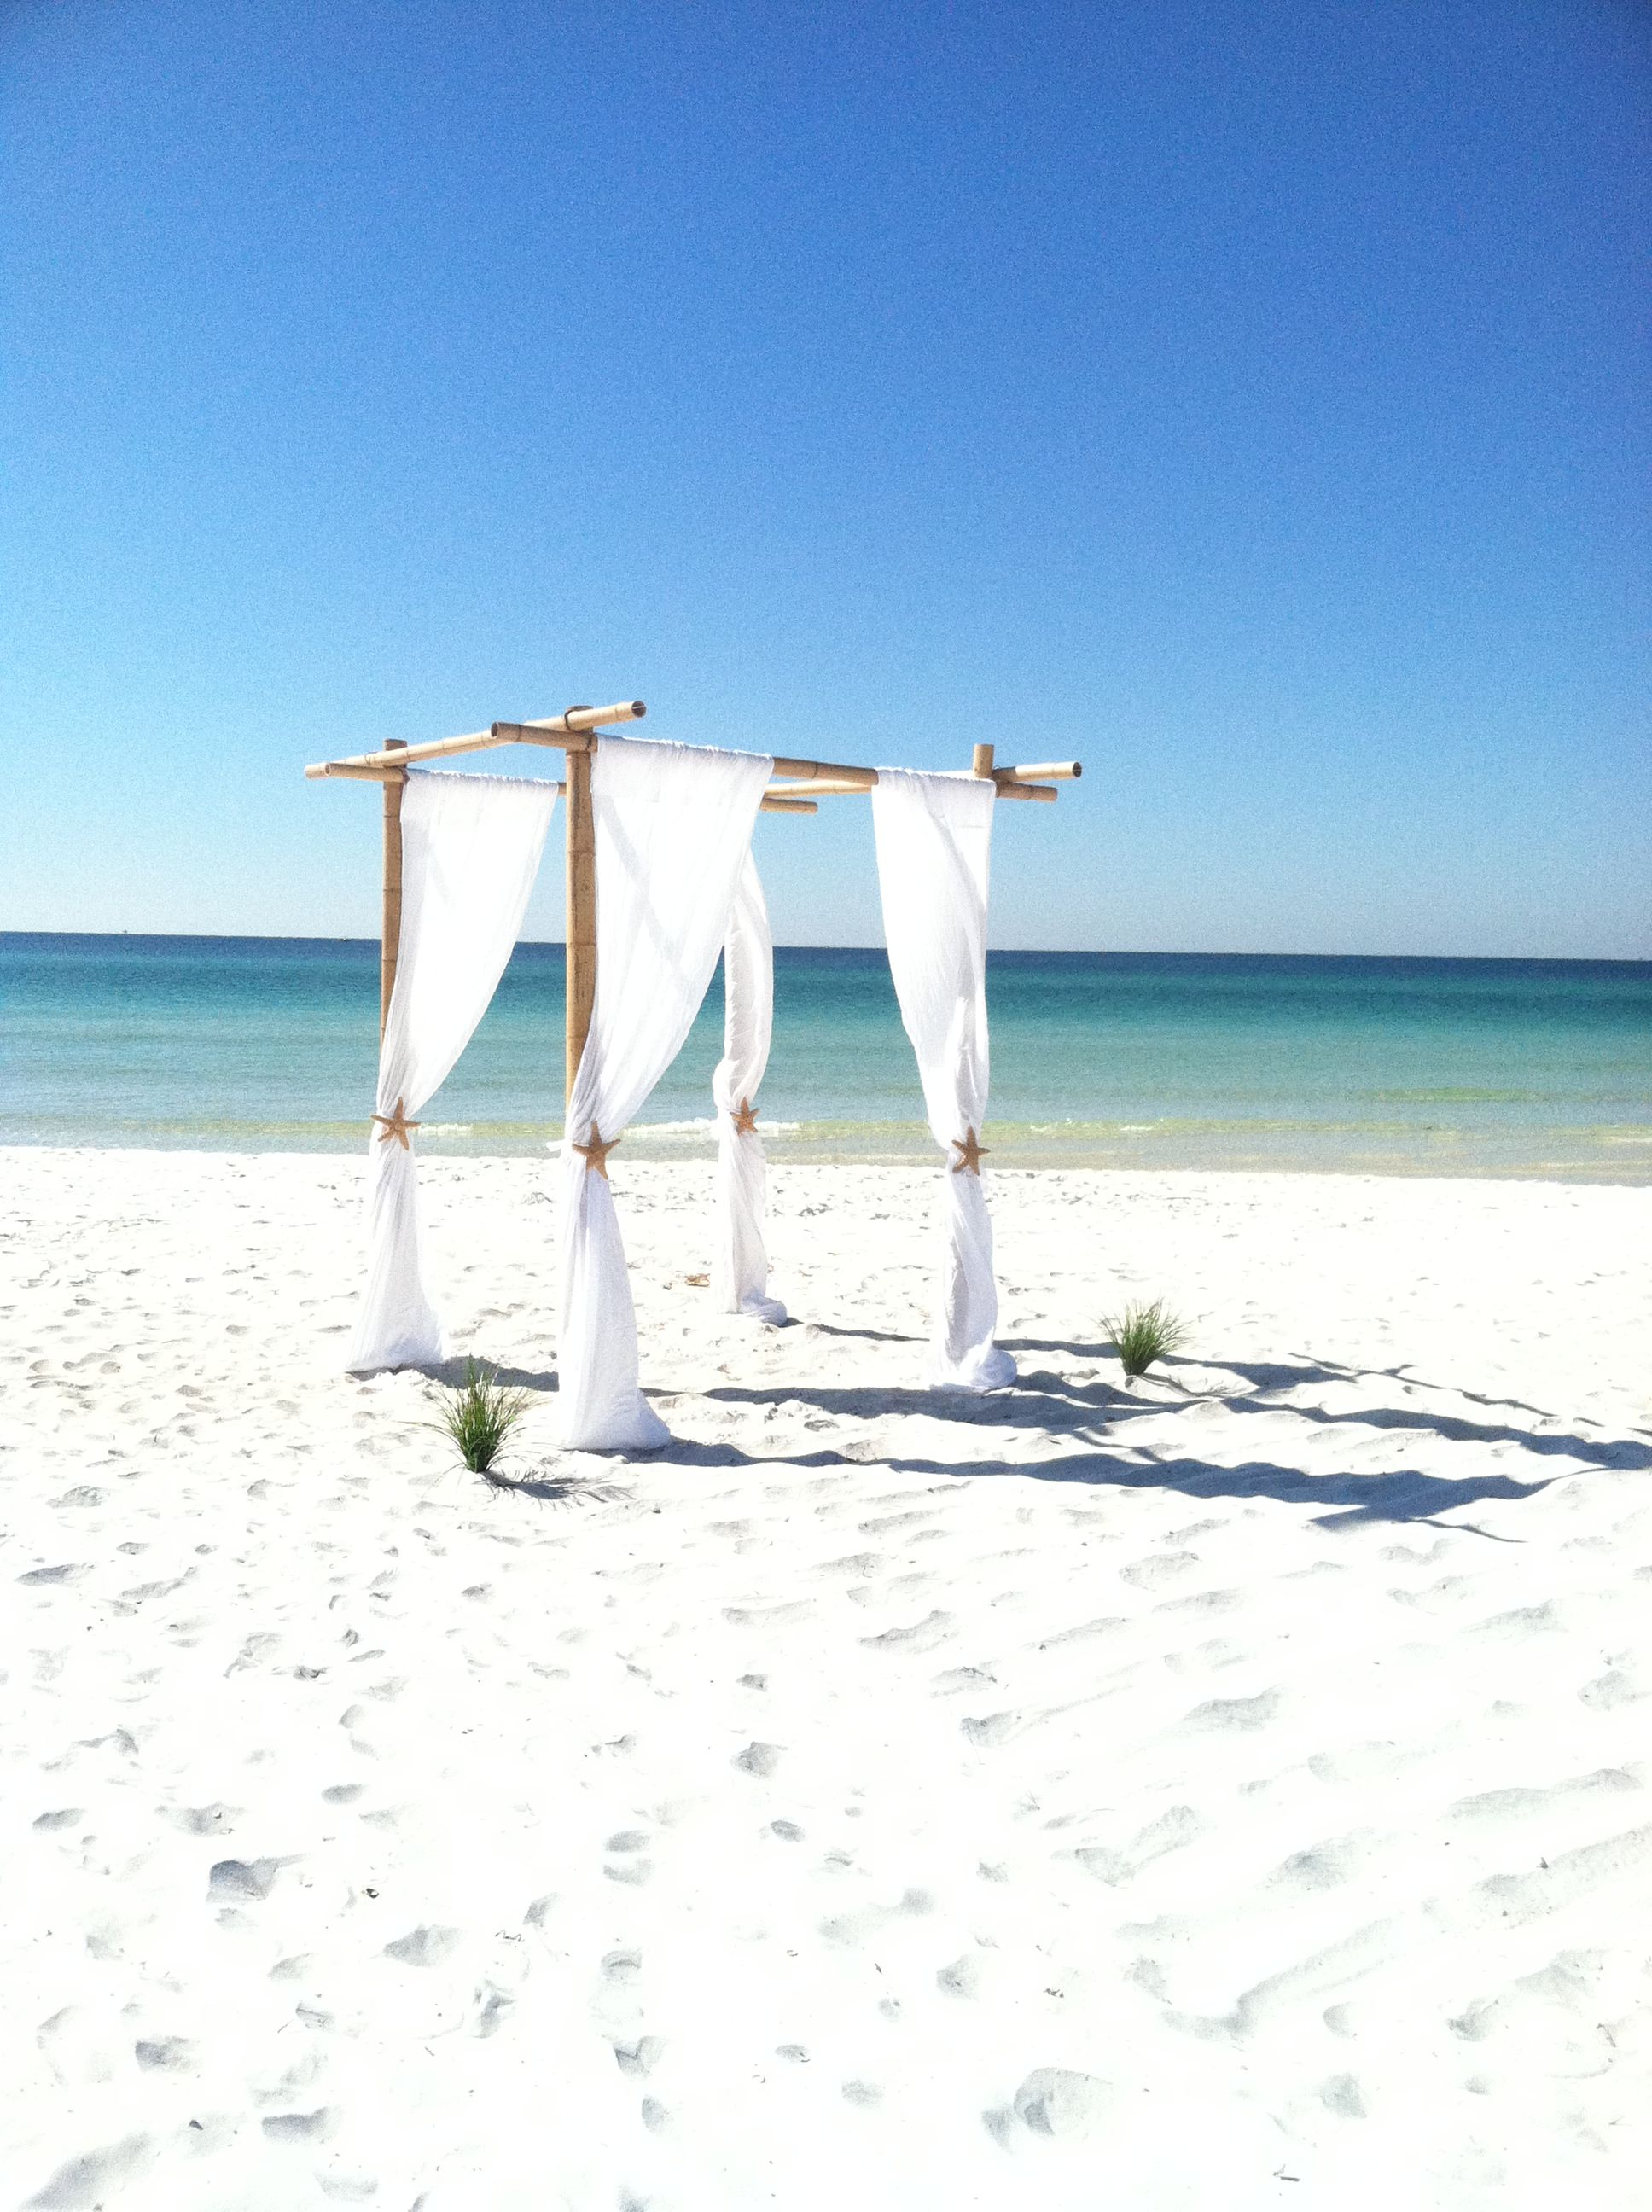 Panama City Beach Weddings Nuptials Wedlock Union Matrimony Panama City Beach Wedding Beach Wedding Locations Panama City Panama